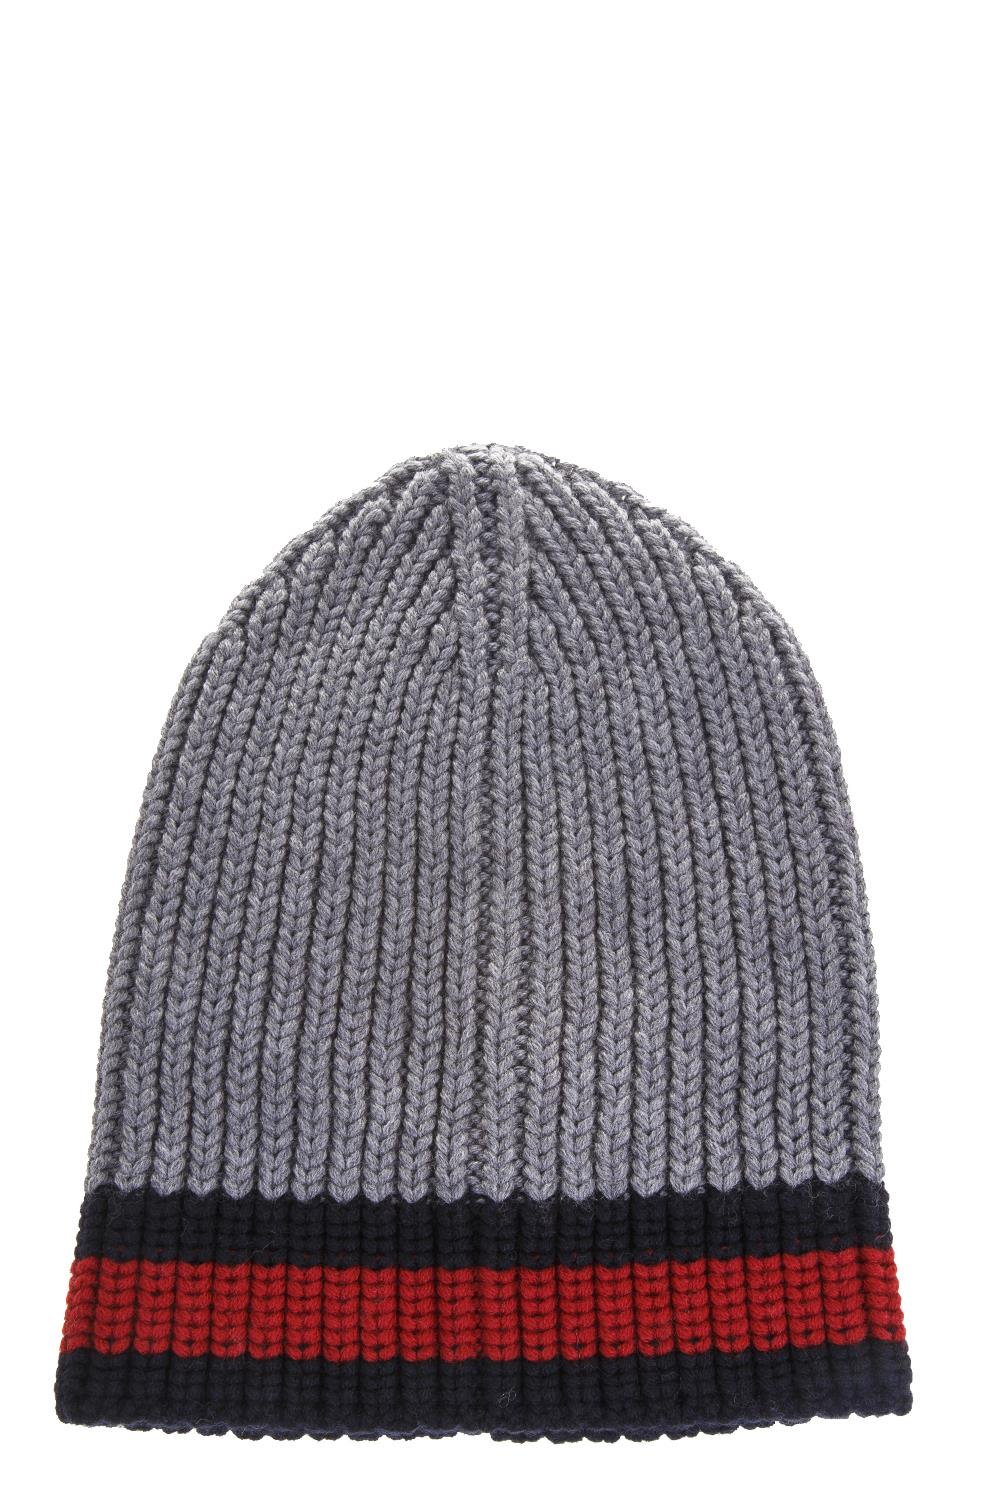 Gucci Web Wool Cable Knit Beanie Hat In Anthracite  1a0d21bc2b8